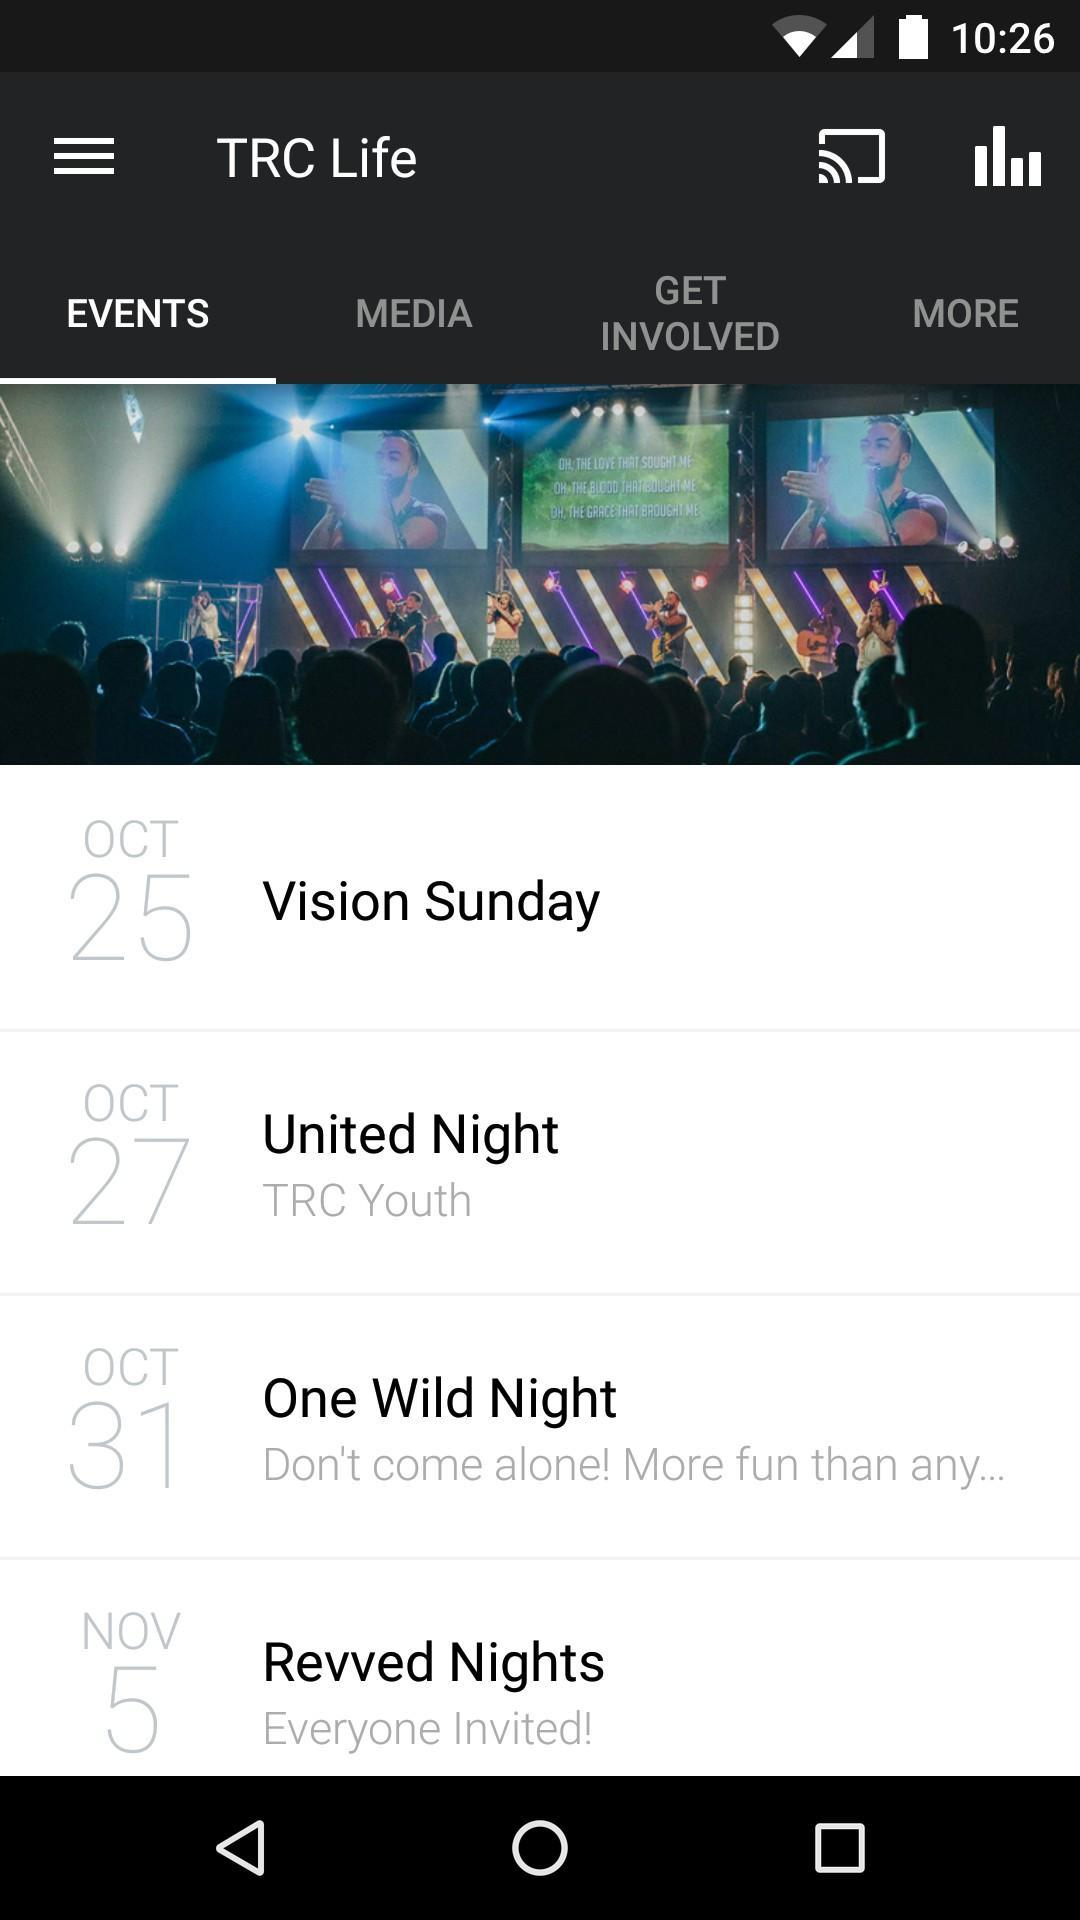 The Rock Church (trclife) poster